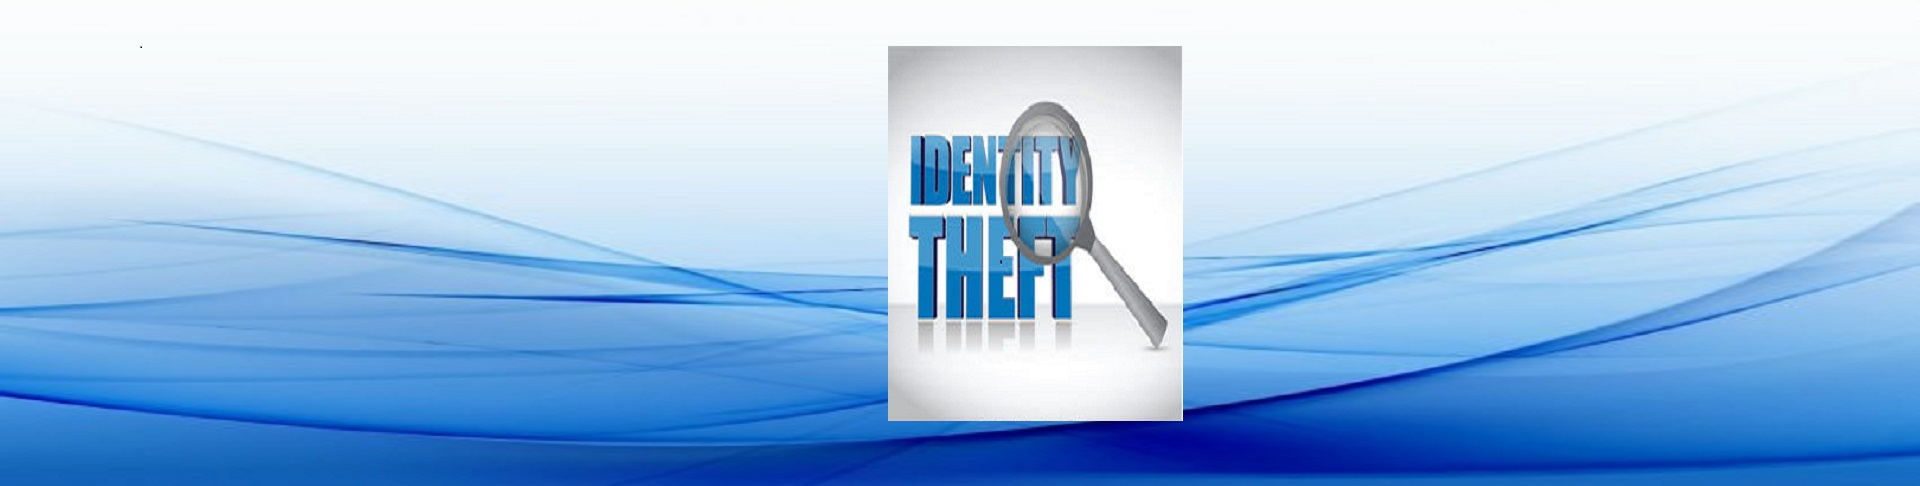 Identity theft slideshow